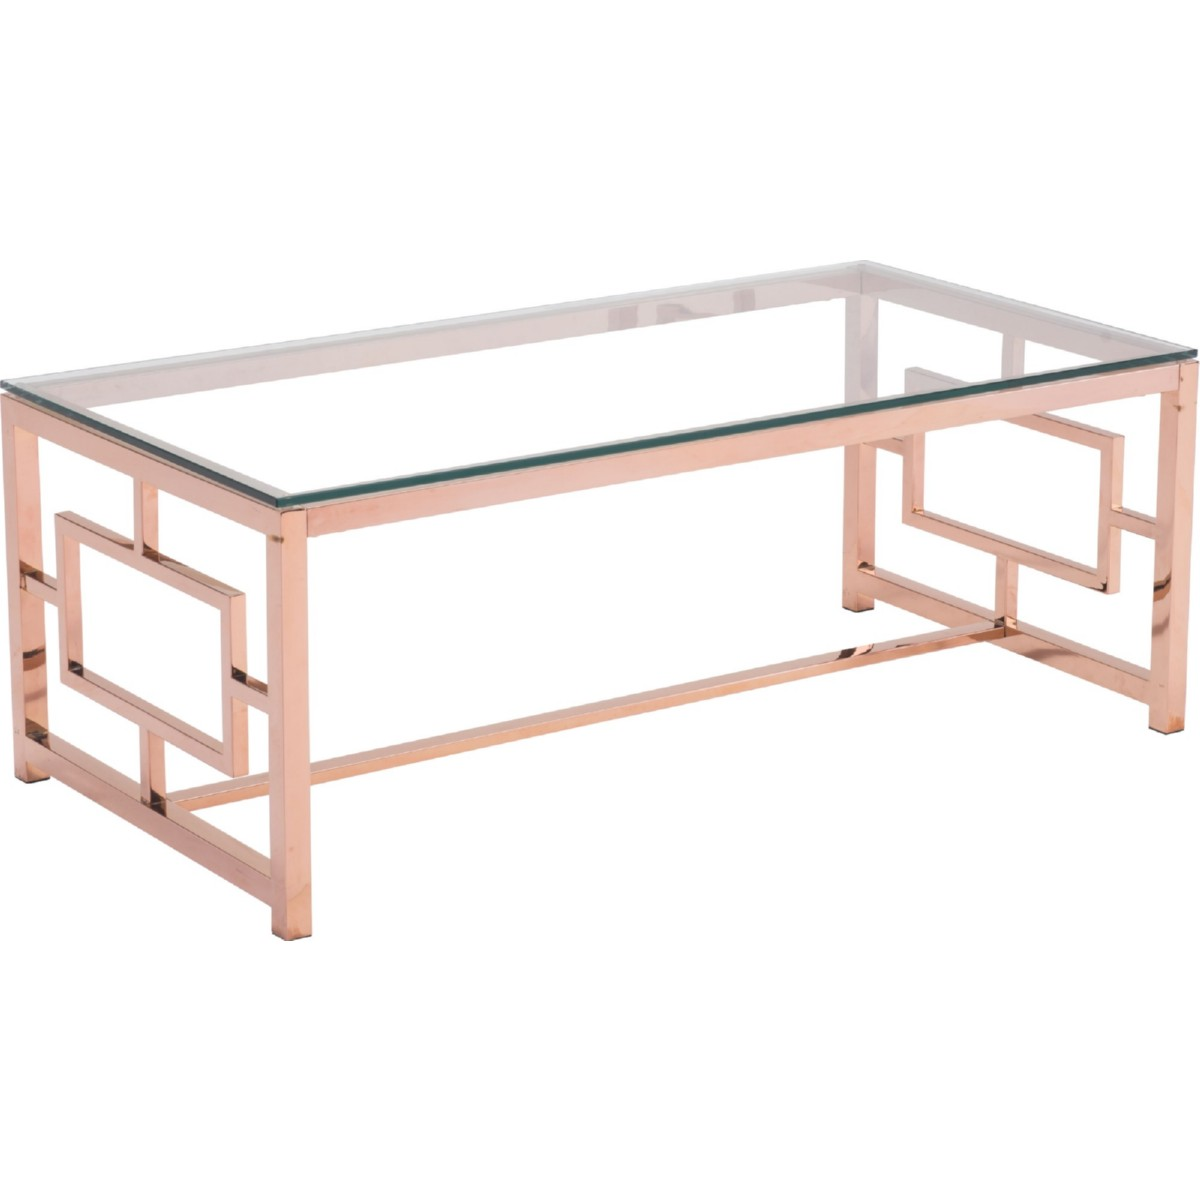 Zuo Modern Geranium Coffee Table in Polished Rose Gold w